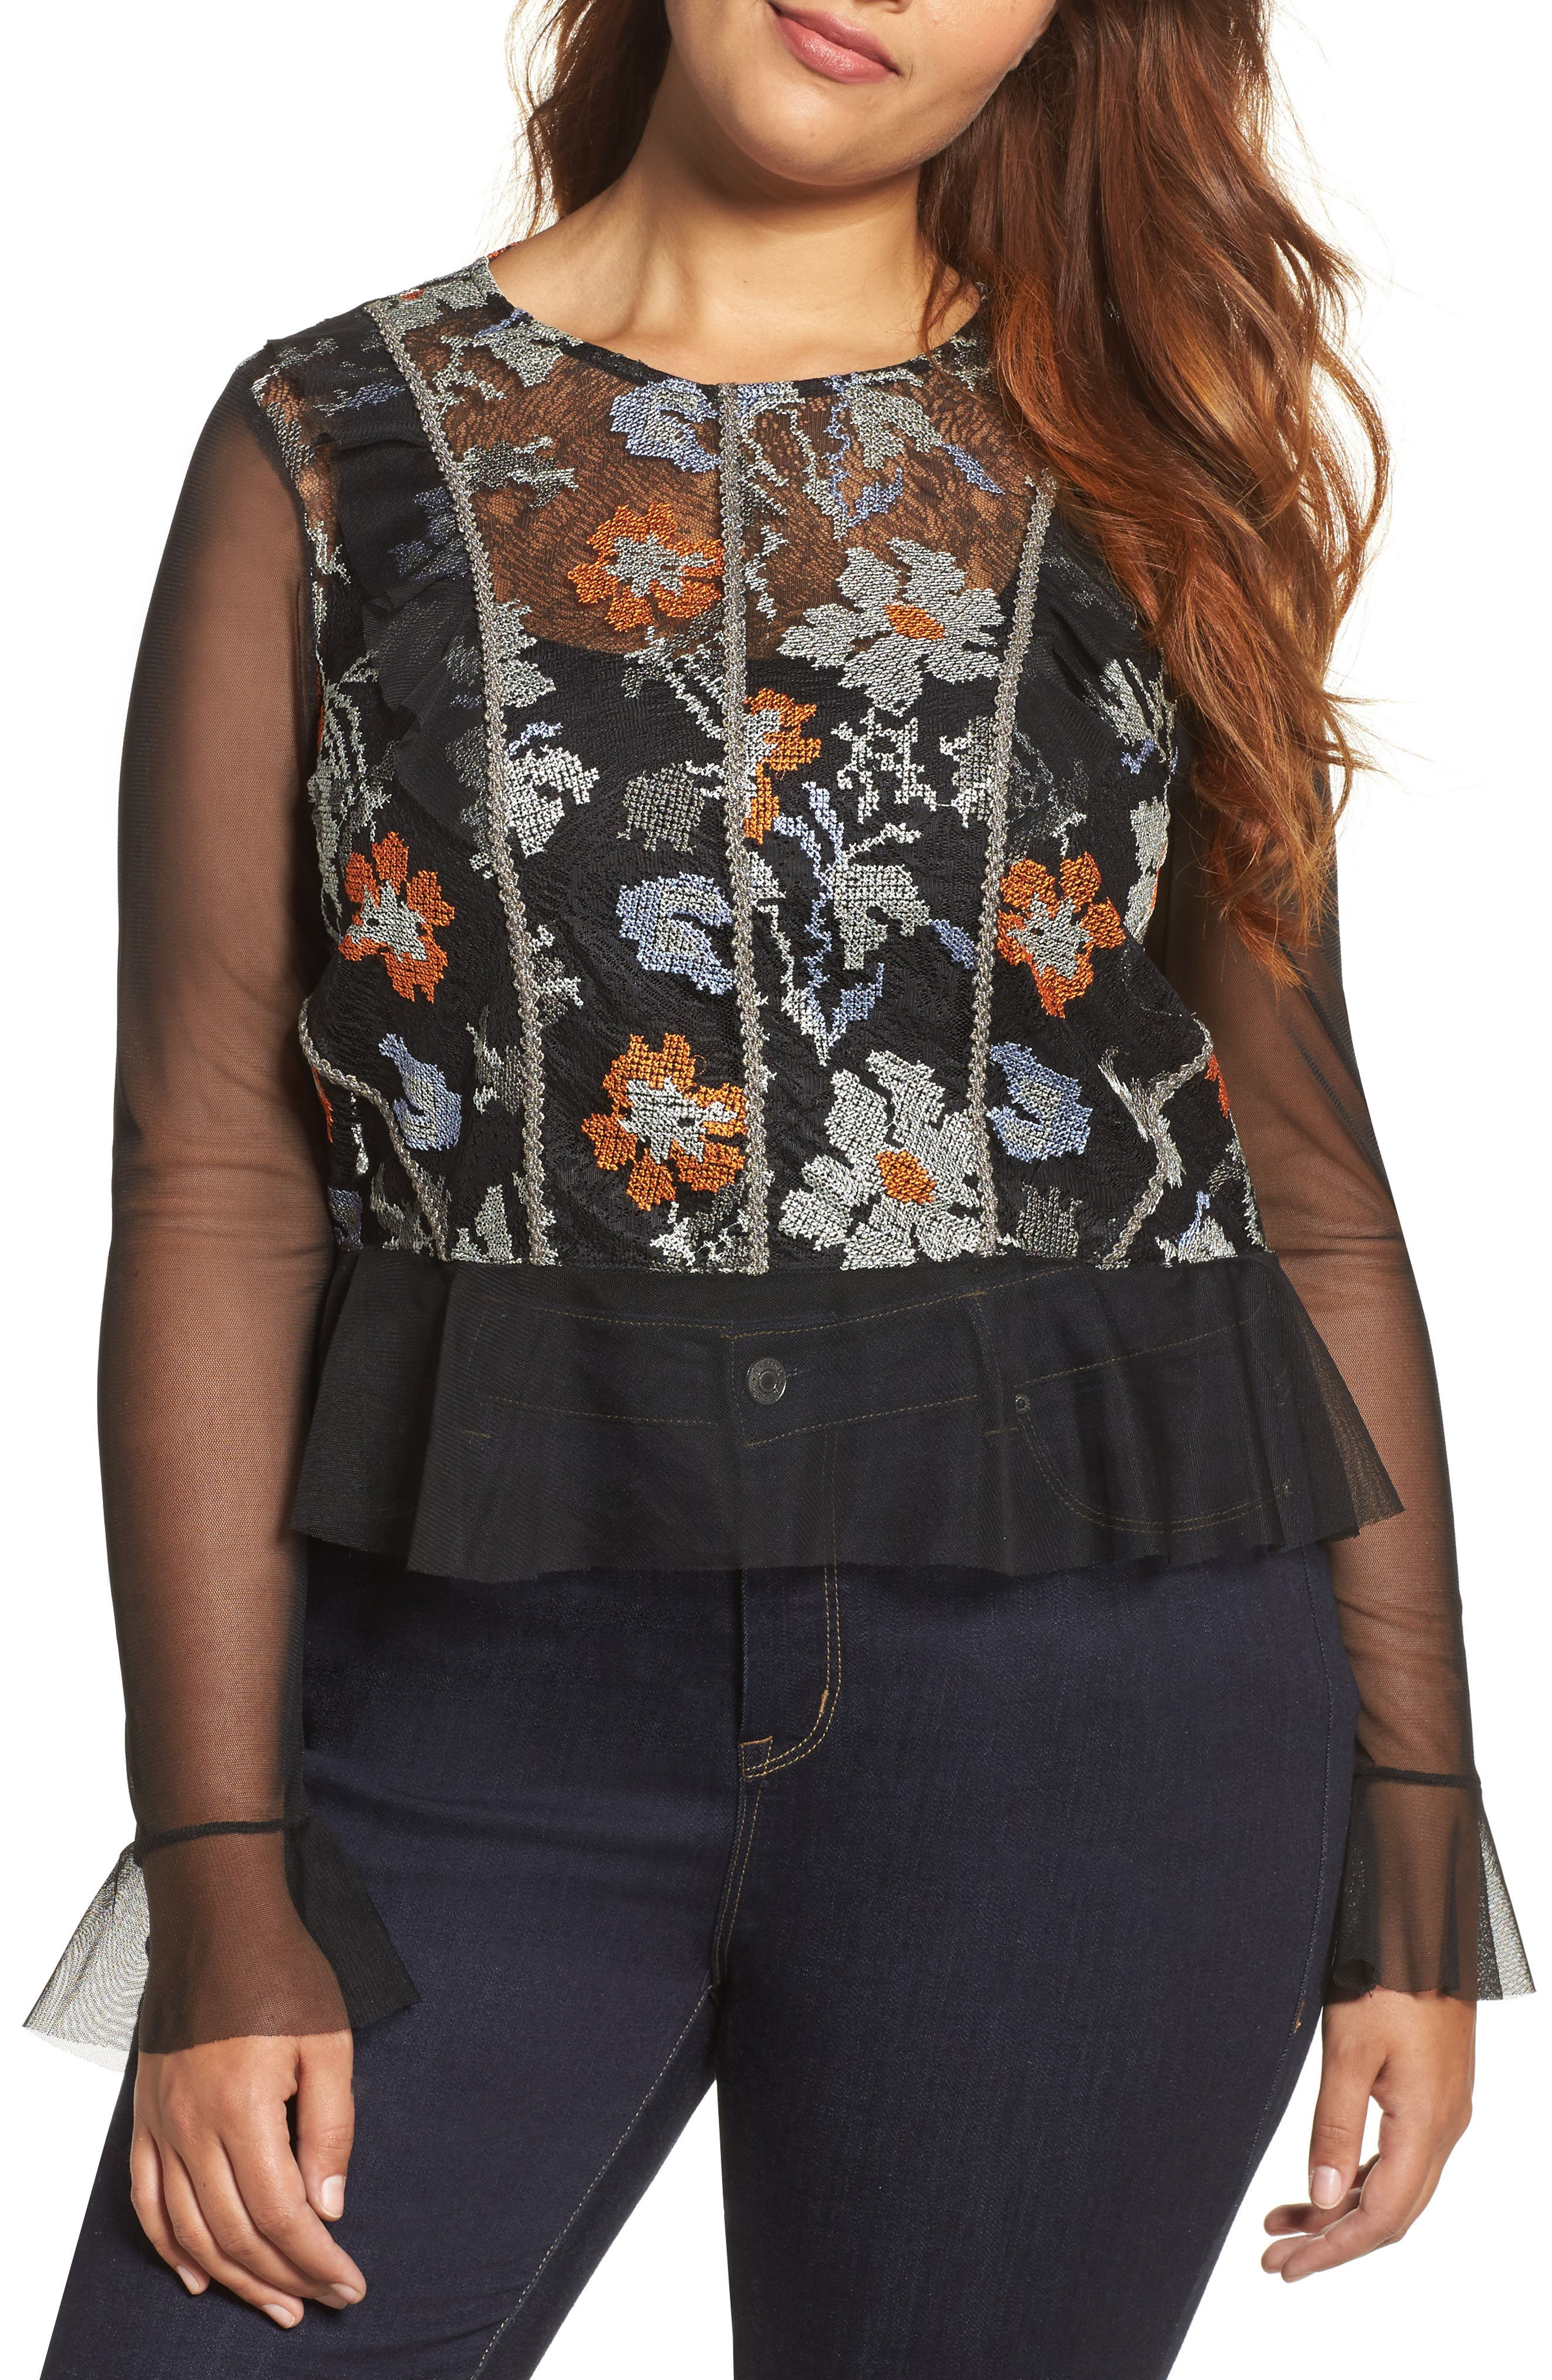 Main Image - ELVI Abstract Floral Lace Top (Plus Size)